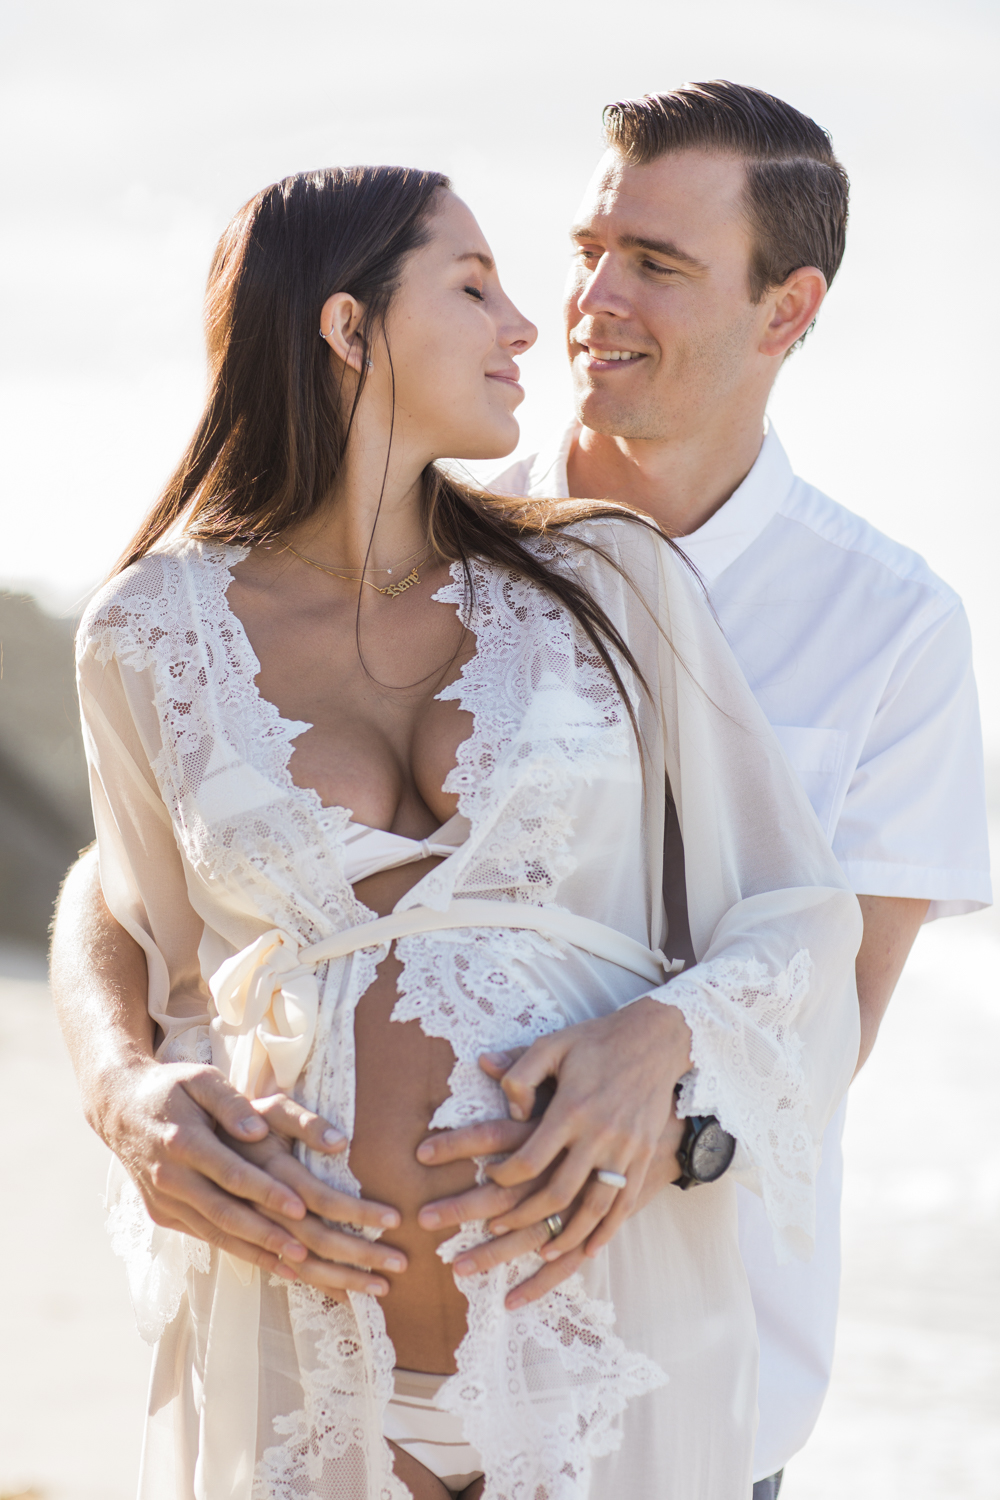 LagunaBeach_Family_MaternityShoot_SidneyKraemer_Low-26.jpg